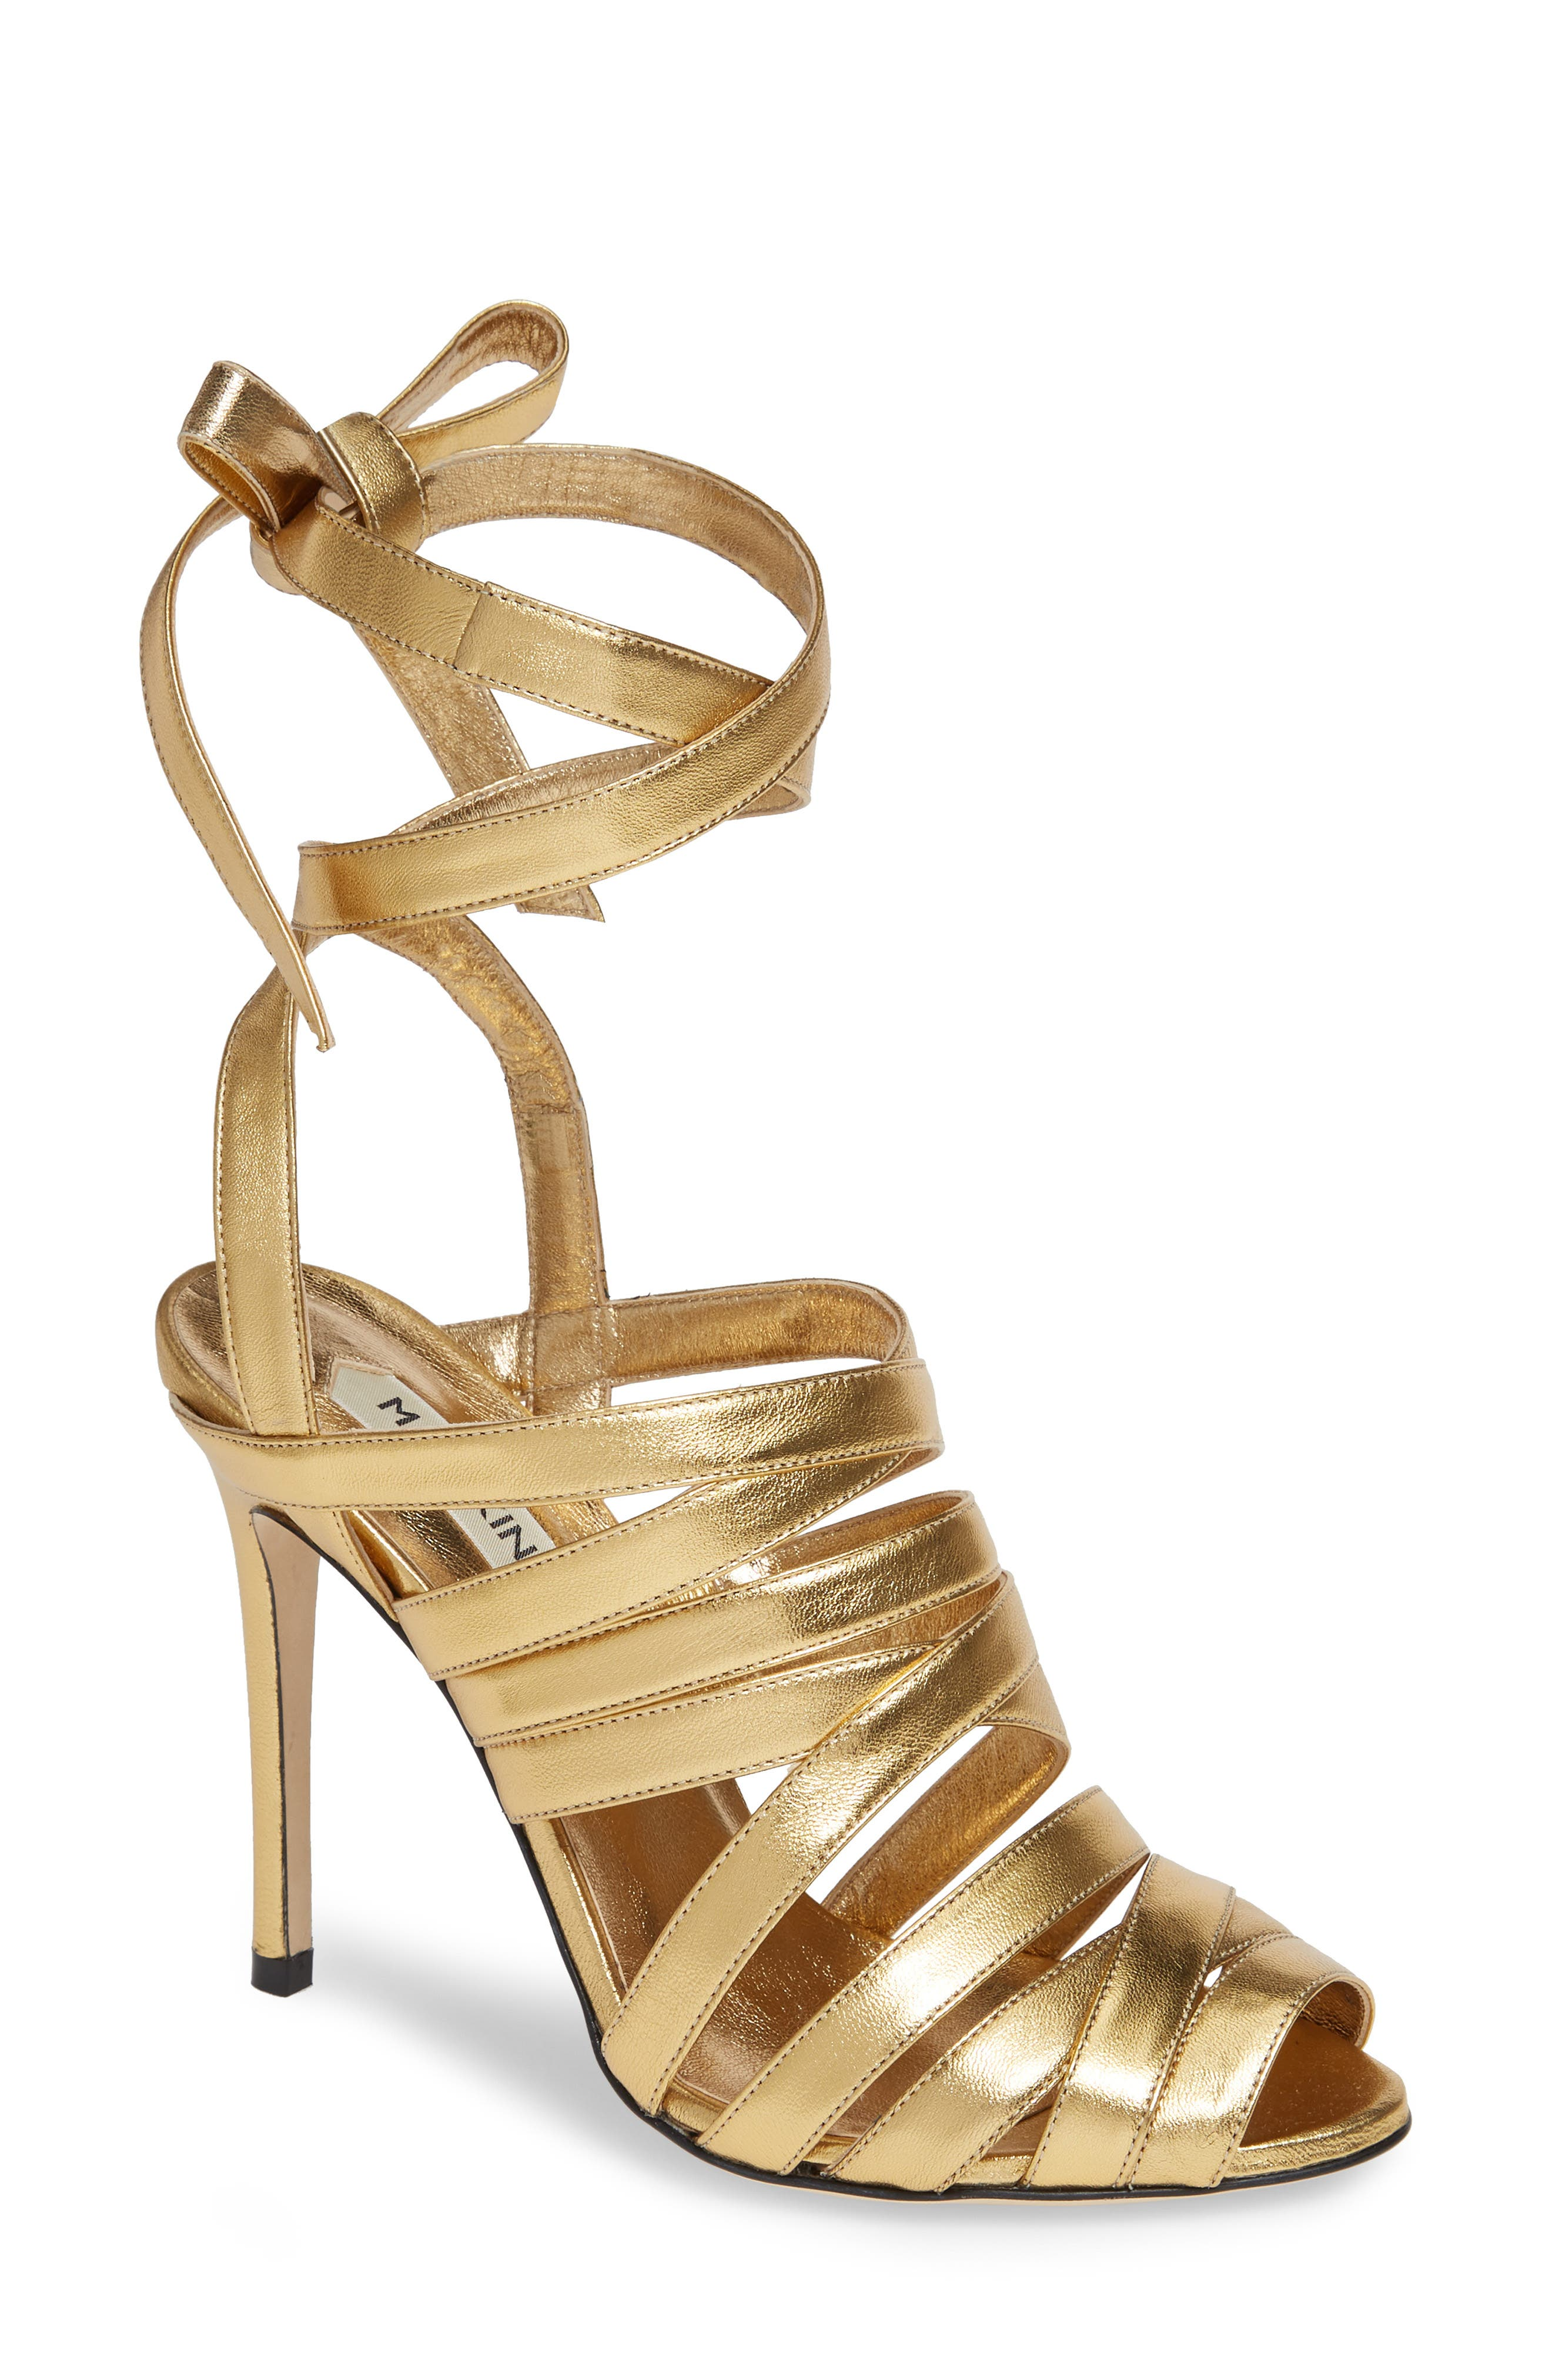 Nadege Strappy Pump,                             Main thumbnail 1, color,                             GOLD LEATHER